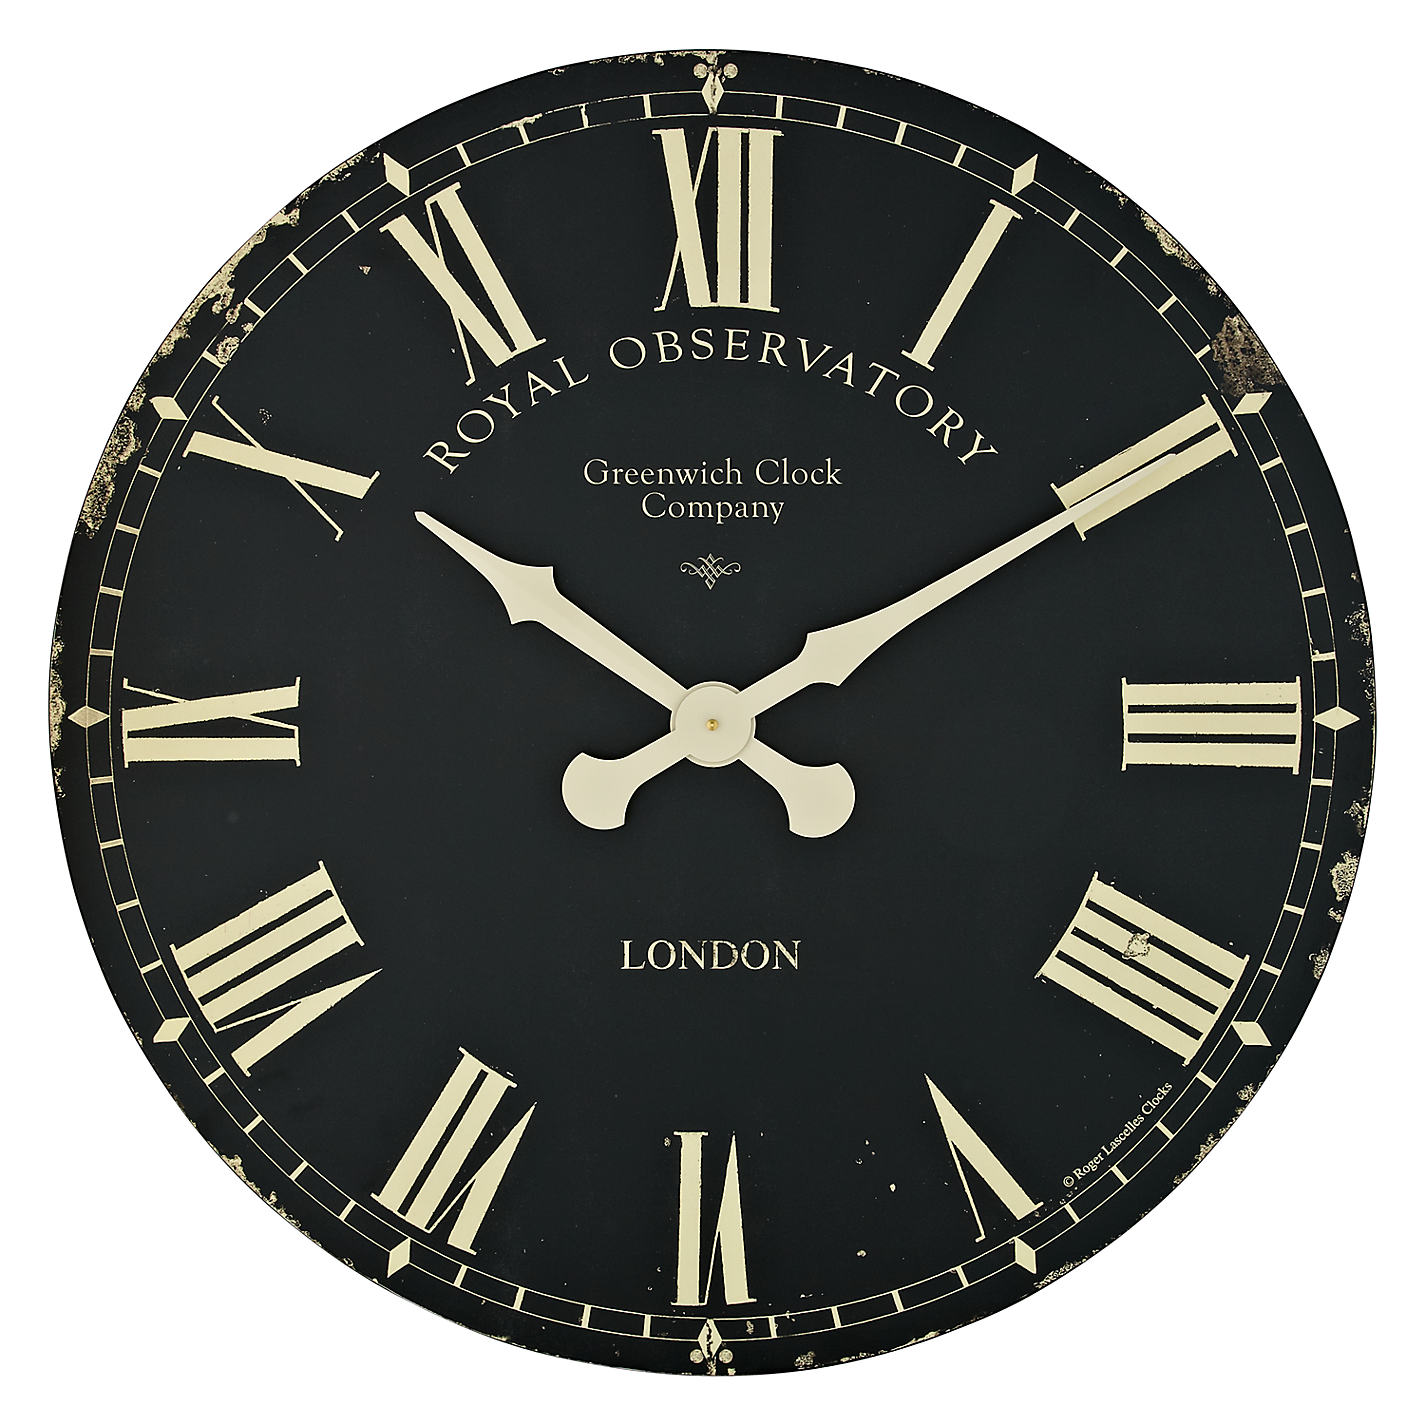 Buy lascelles greenwich clock dia70cm black john lewis buy lascelles greenwich clock dia70cm black online at johnlewis amipublicfo Gallery